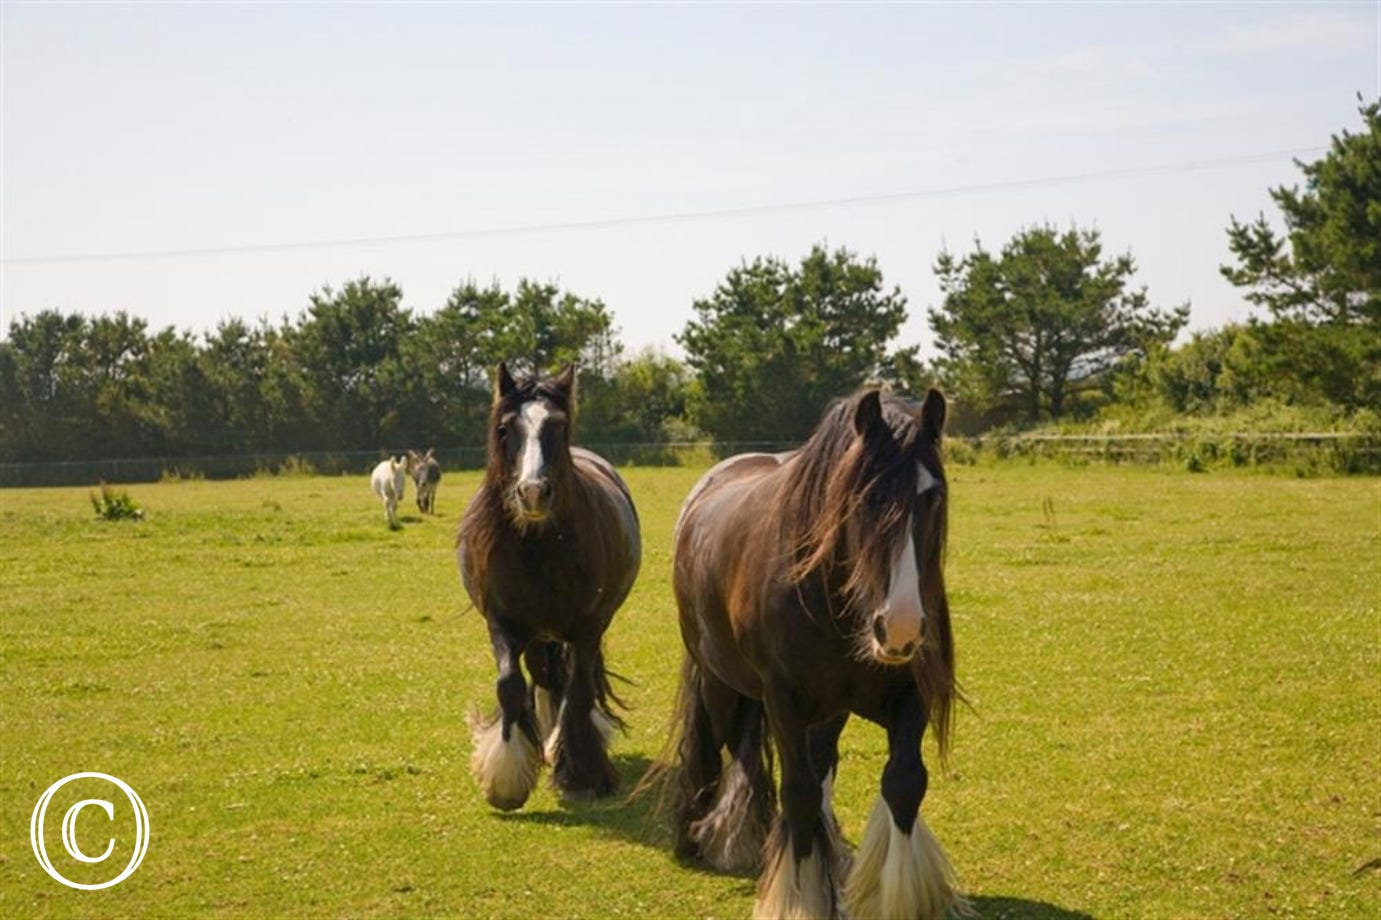 Owners Shire horses in neighbouring field